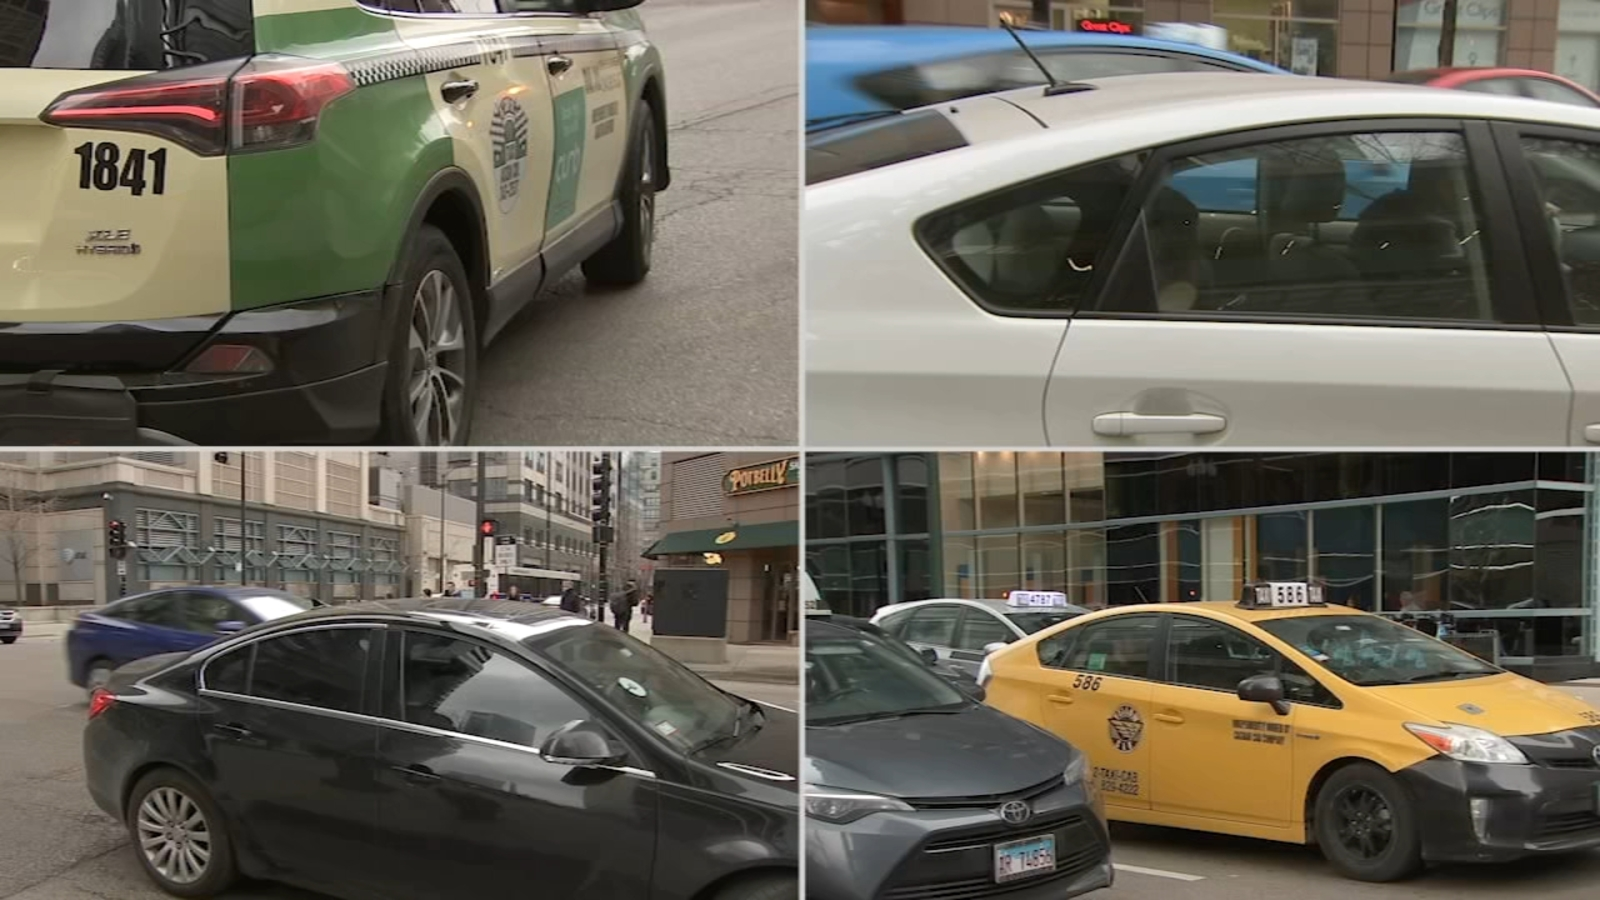 Chicago rideshare tax: Which is cheaper, Uber, Lyft or taxi?